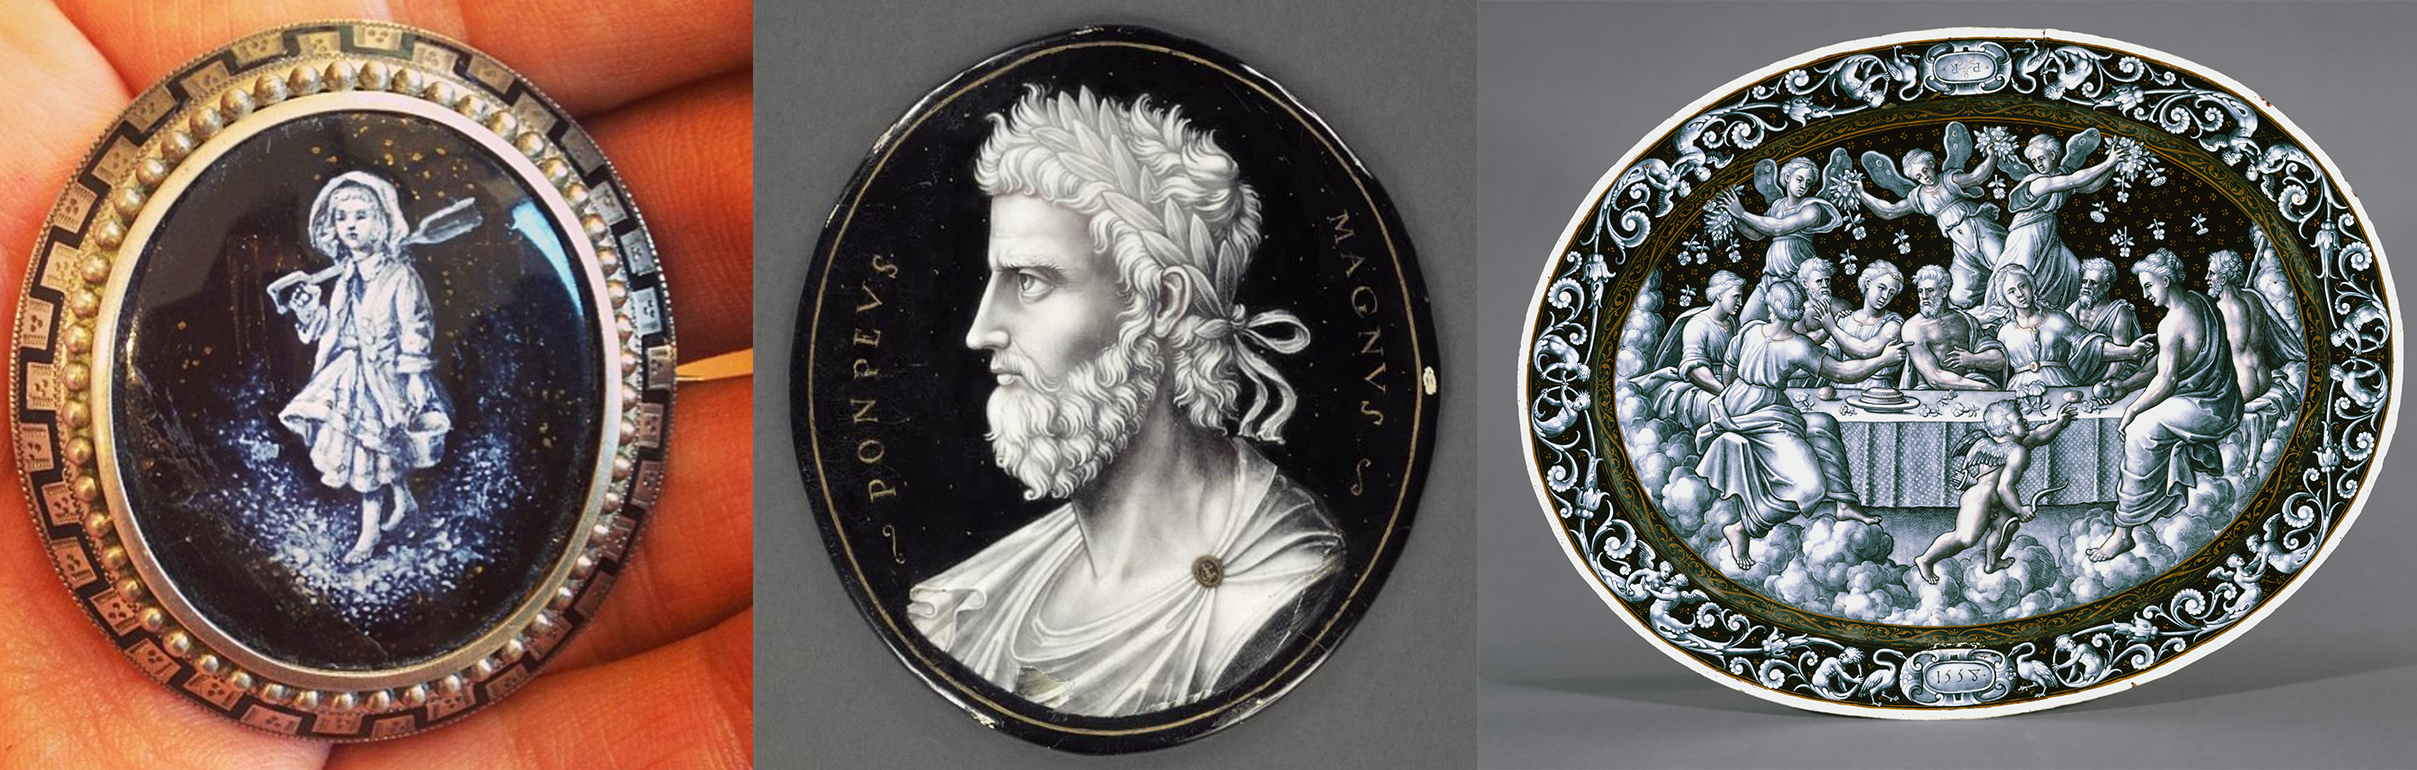 Left: A sterling silver enameled brooch with a grisaille enameled center, c. 1830 currently for sale at Victoriana. Middle: A grisaille enamel metal of Penicaud John II (16th century) louvre. Right: A grisaille silver plate by Pierre Courteys c. 16th century.